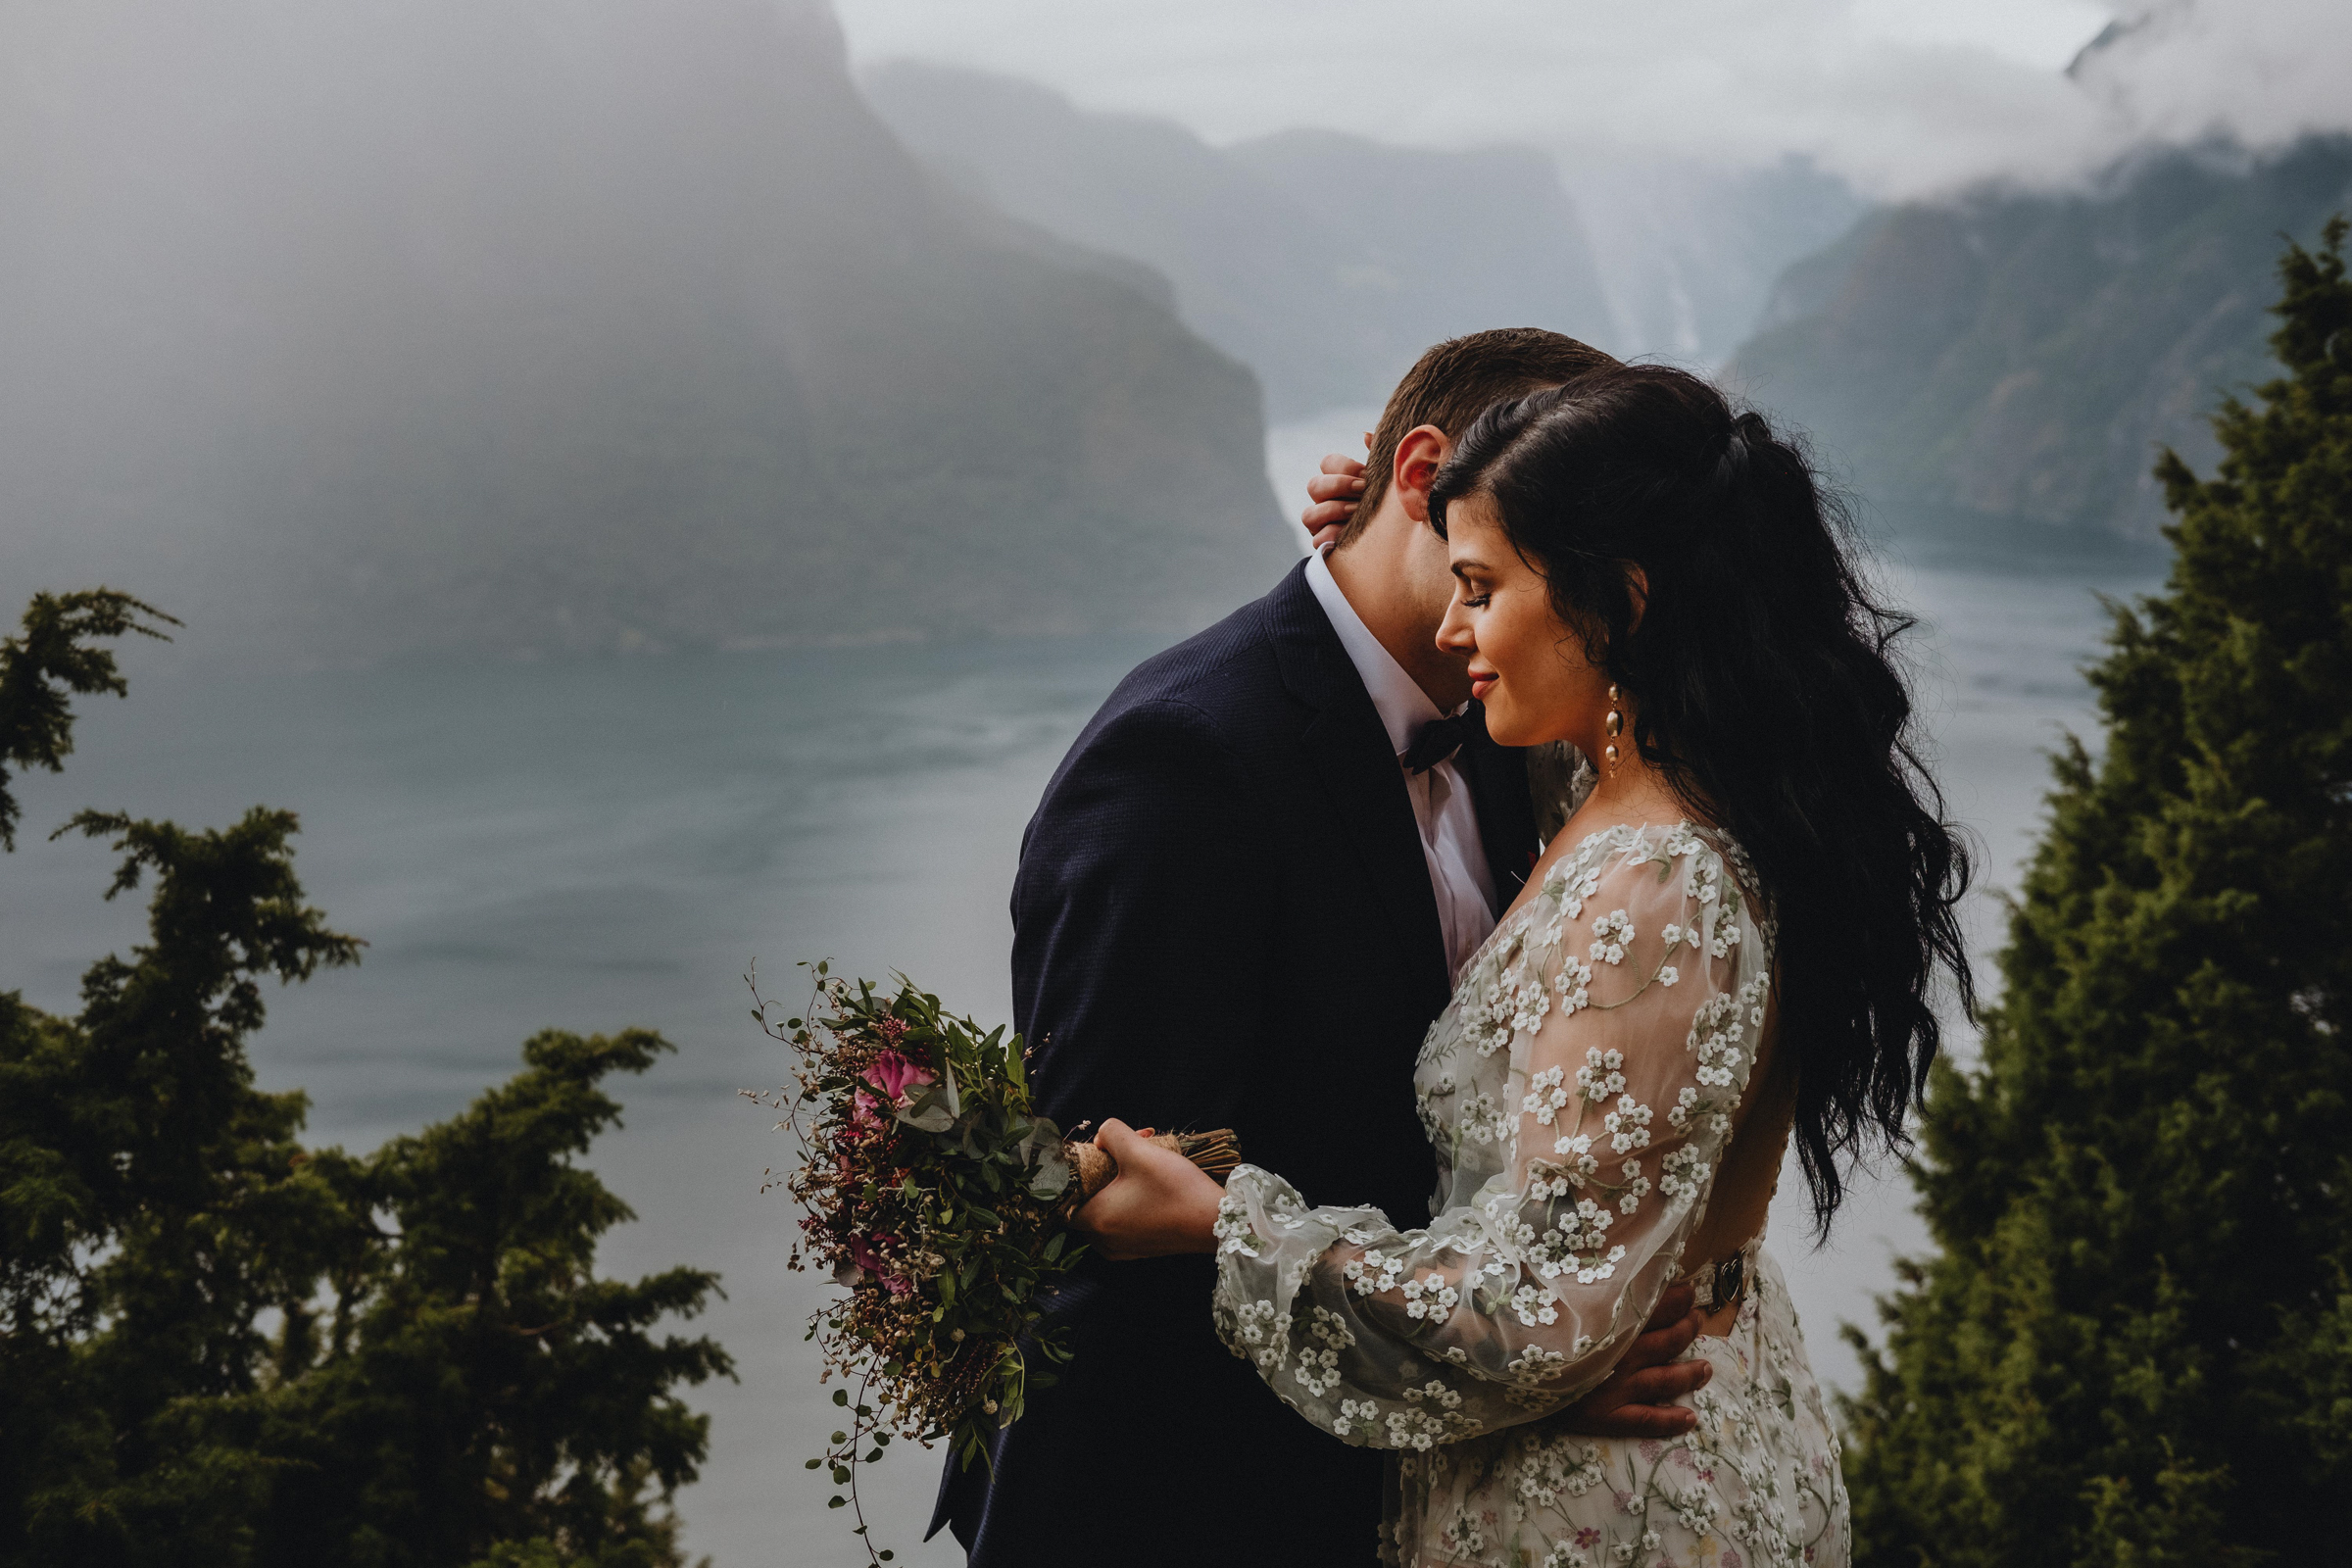 elopement-couple-embrace-against-epic-backdrop-in-aurland-norway-christin-eide-photography